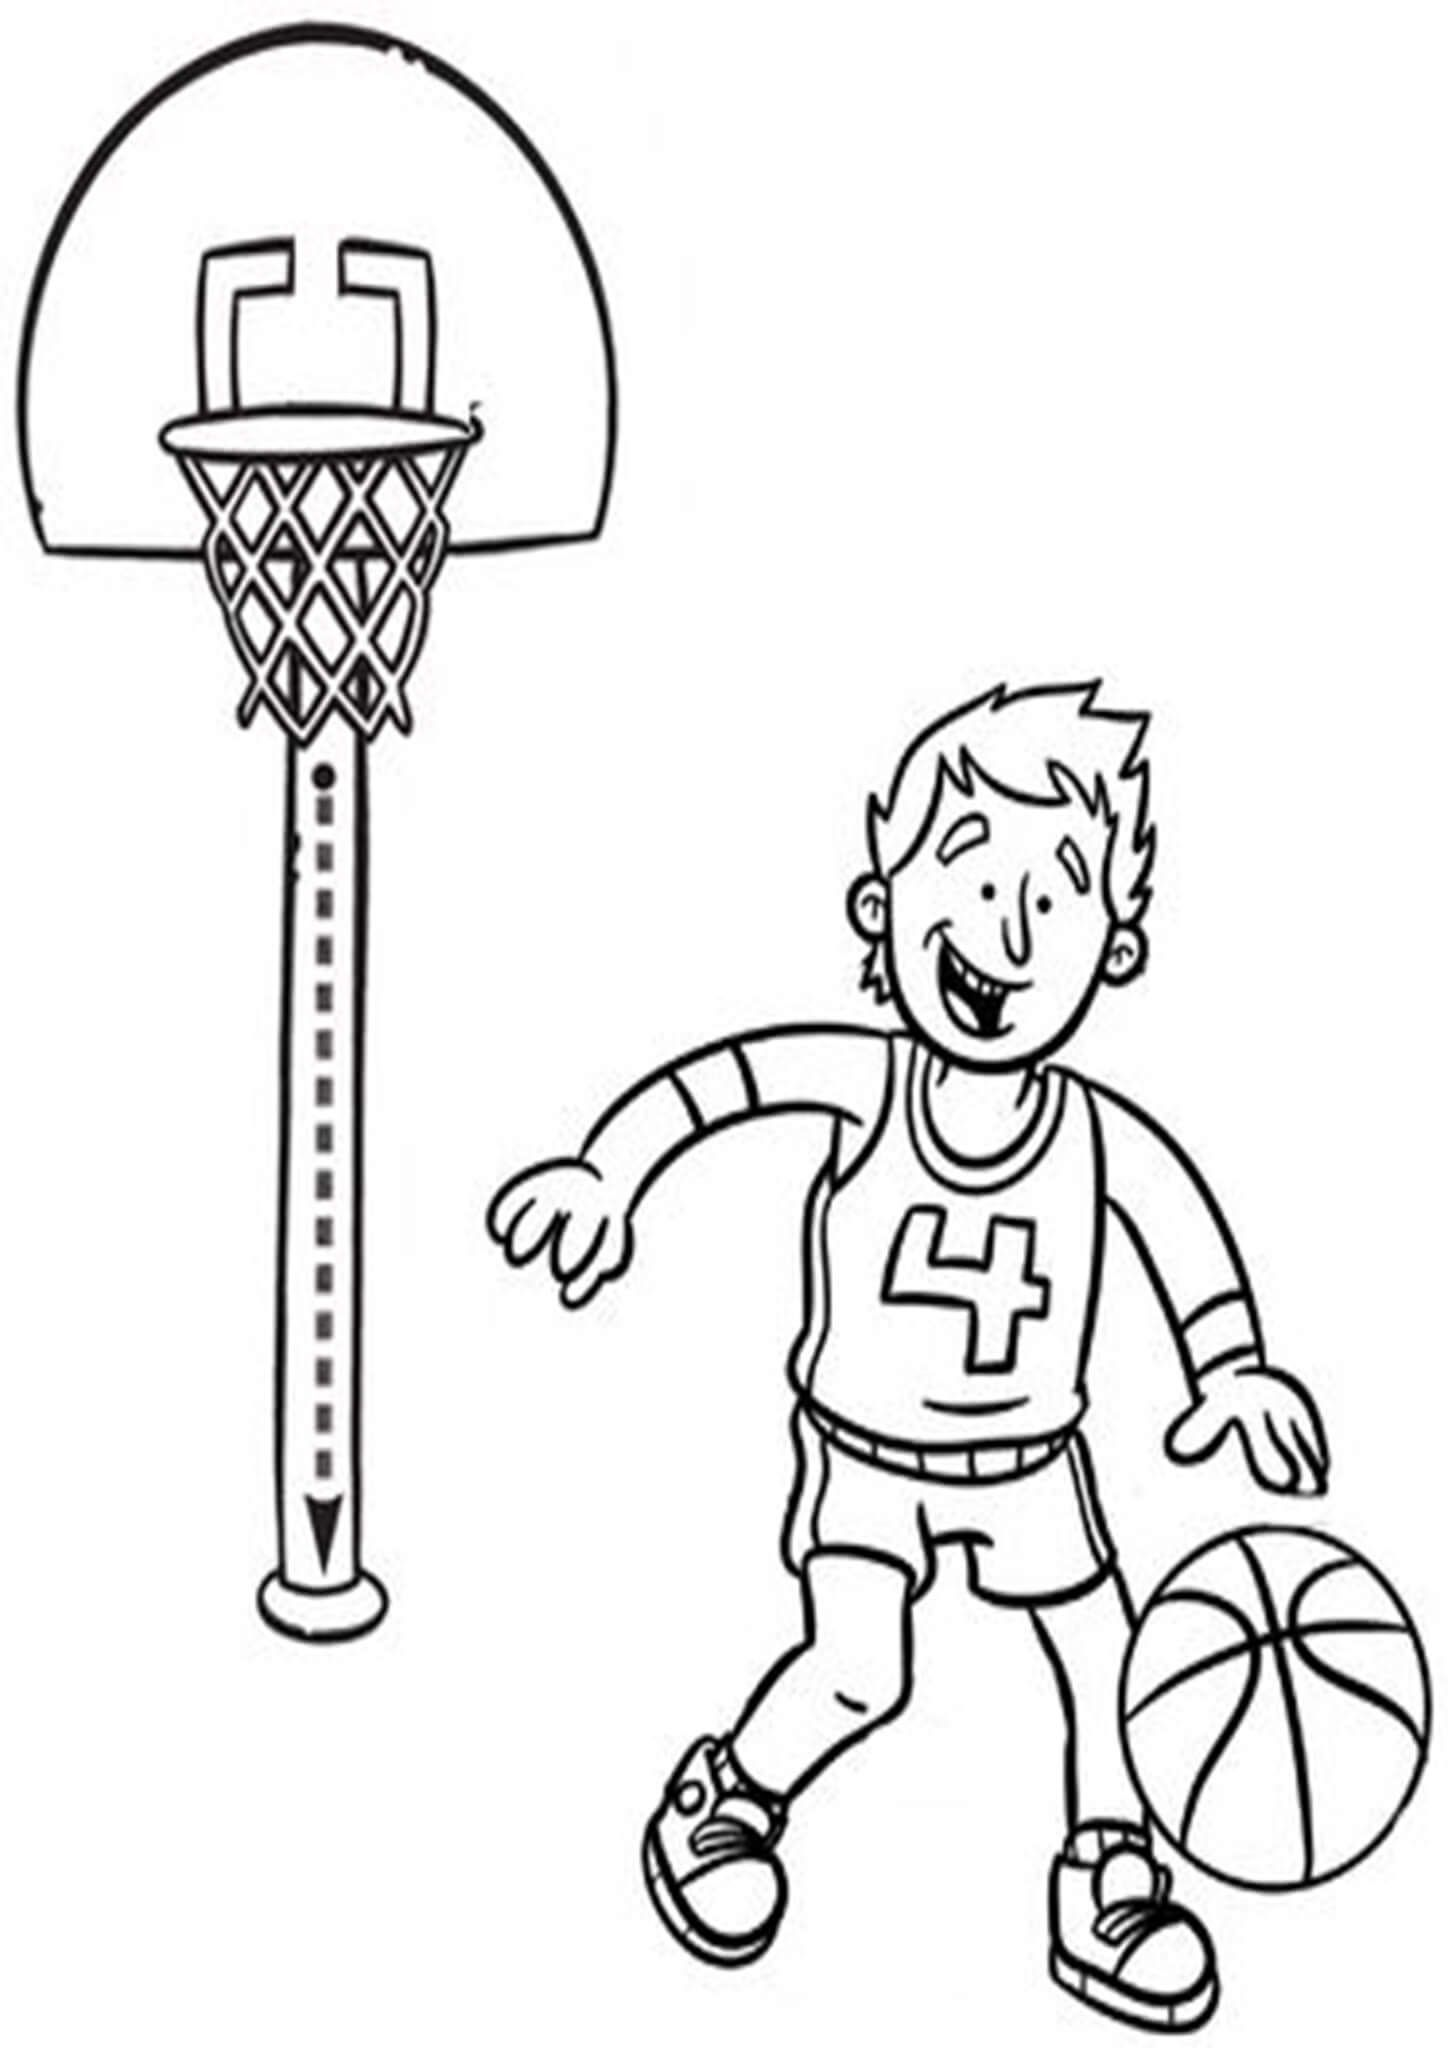 Printable Coloring Pages Basketball Desain